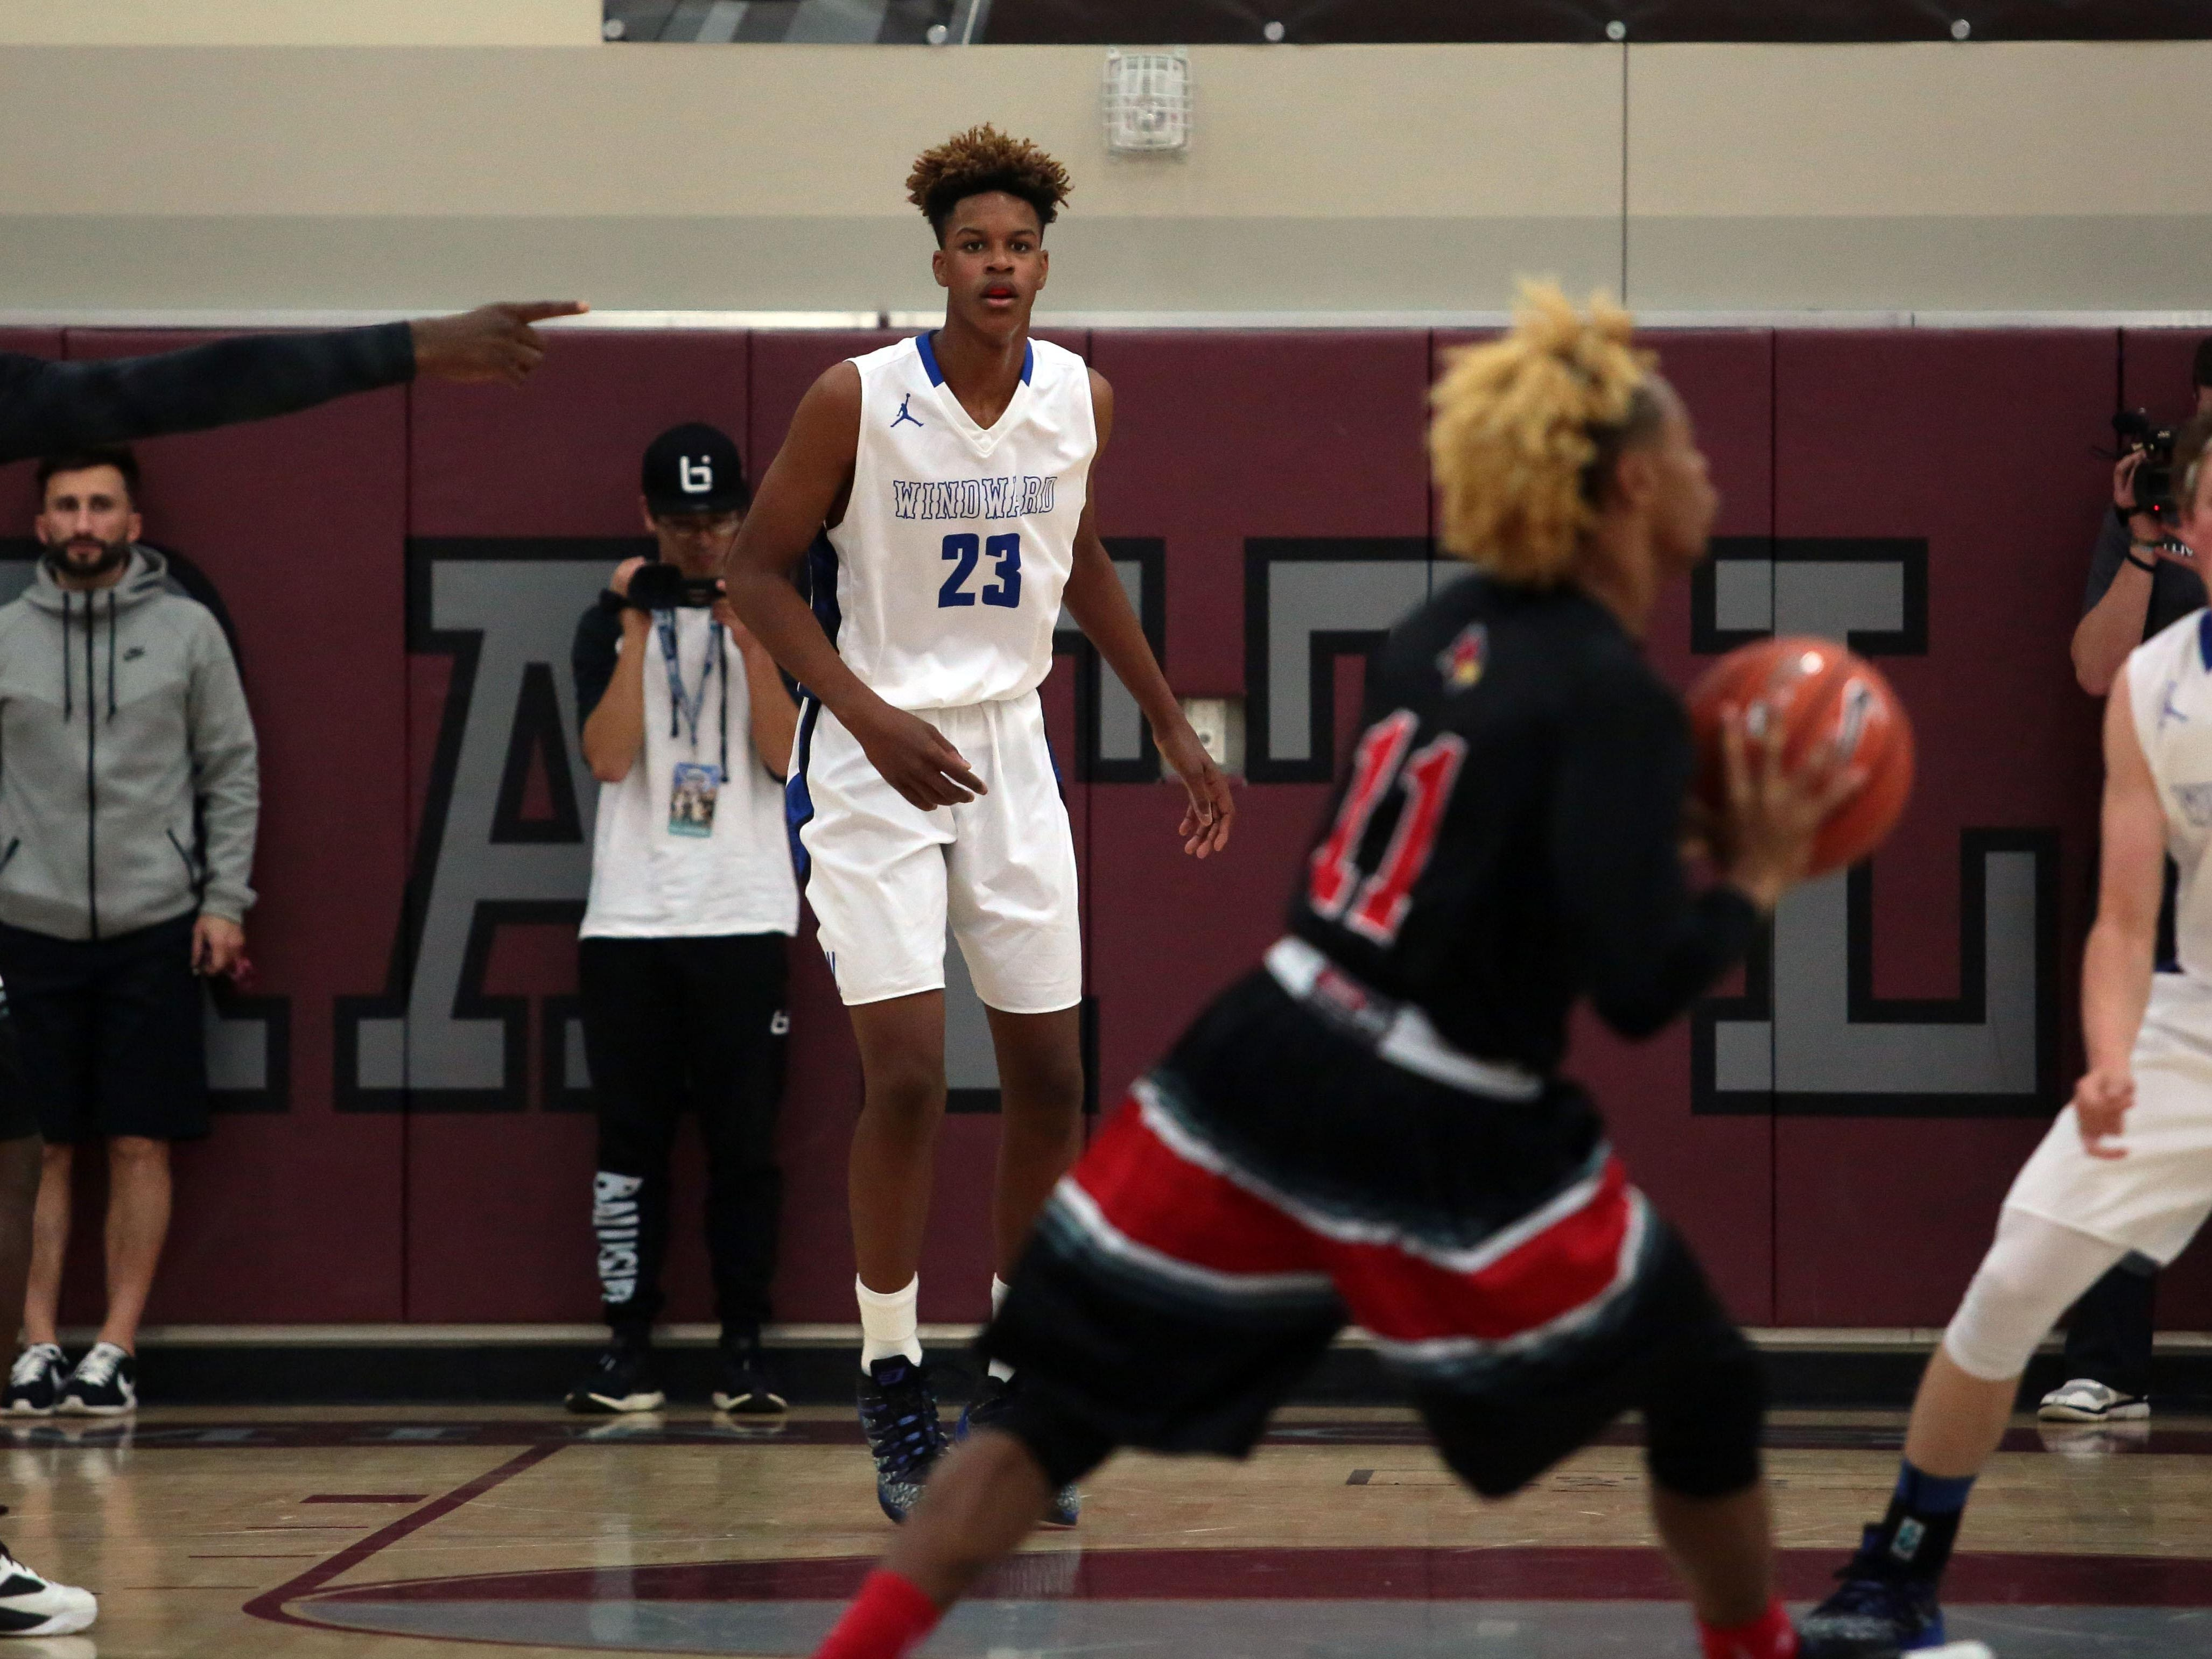 Richard Lui/The Desert SunWindward High School forward Shareef O'Neal (23) in action against Jonesboro on Saturday. Windward High School forward Shareef O'Neal in action against Jonesboro on Saturday at Rancho Mirage High School during the MaxPreps Holiday Classic.